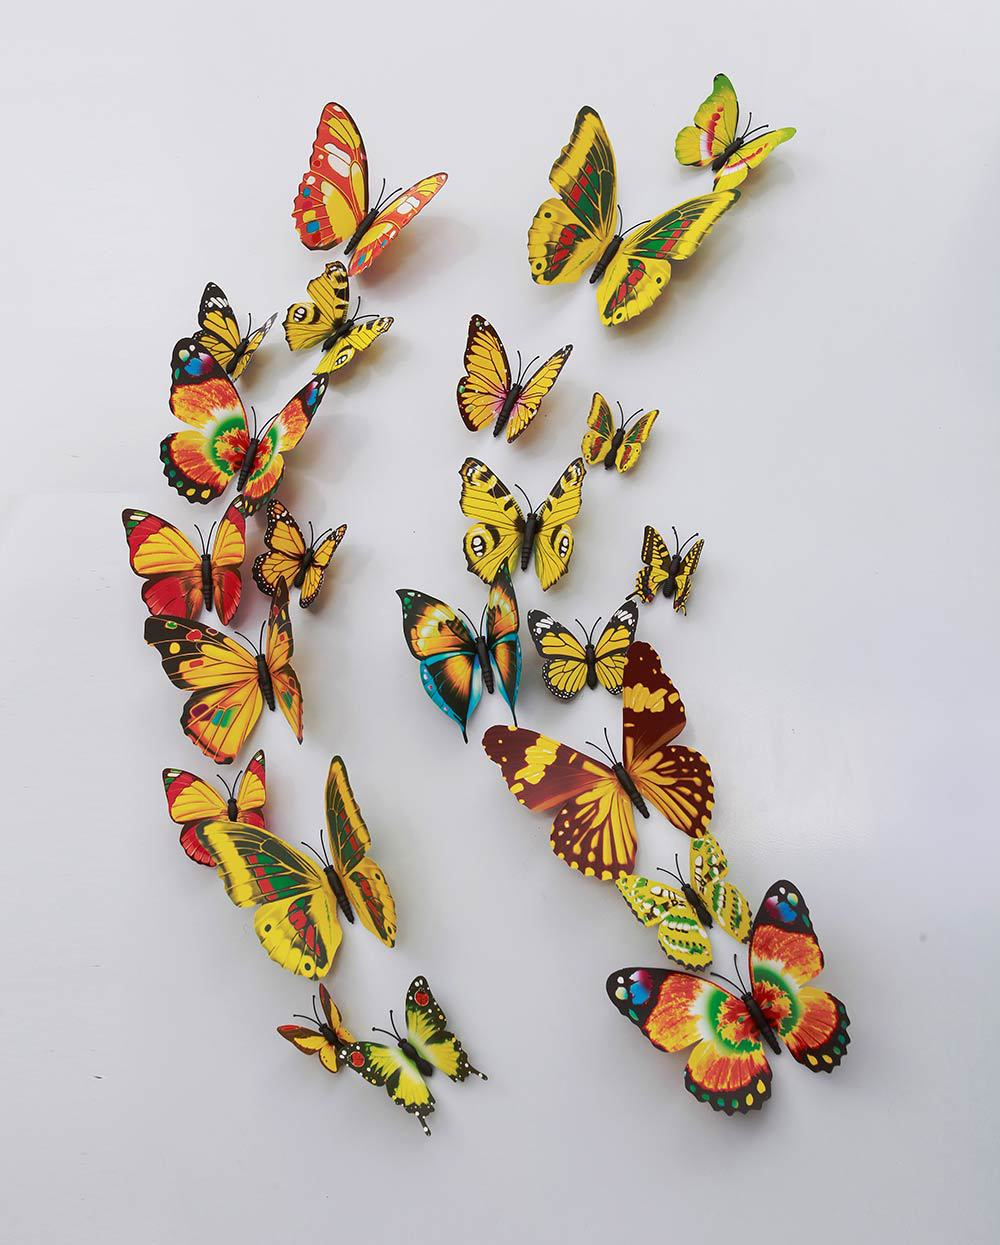 % 12 Pcs/Lot PVC Butterfly Decals 3D Wall Stickers Home Decor Poster Kids Rooms Adhesive to Wall Decoration Adesivo De Parede